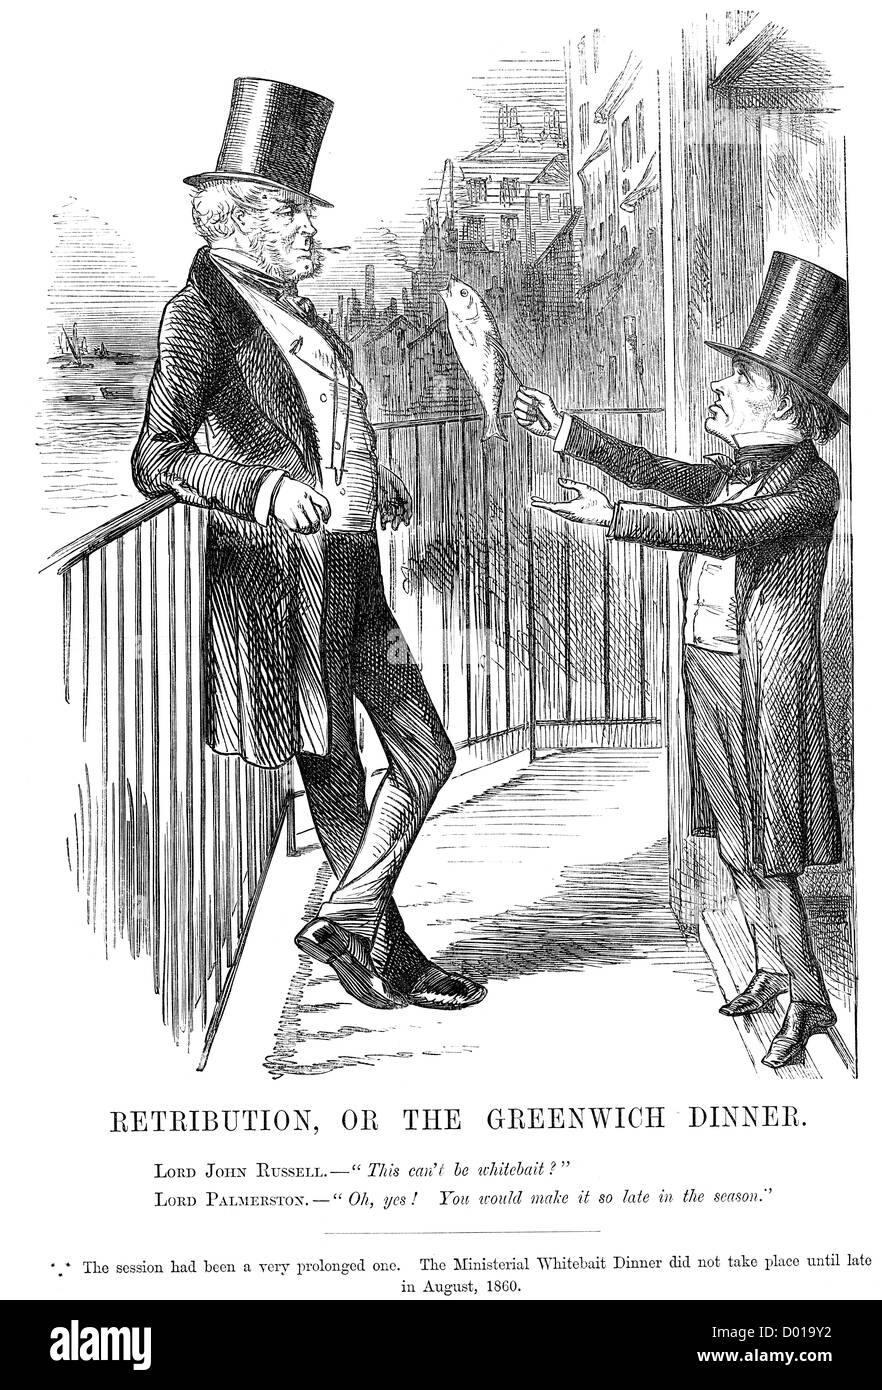 Retribution or the Greenwich Dinner. Political cartoon showing Lord John Russell and Lord Palmerston, August 1860 - Stock Image